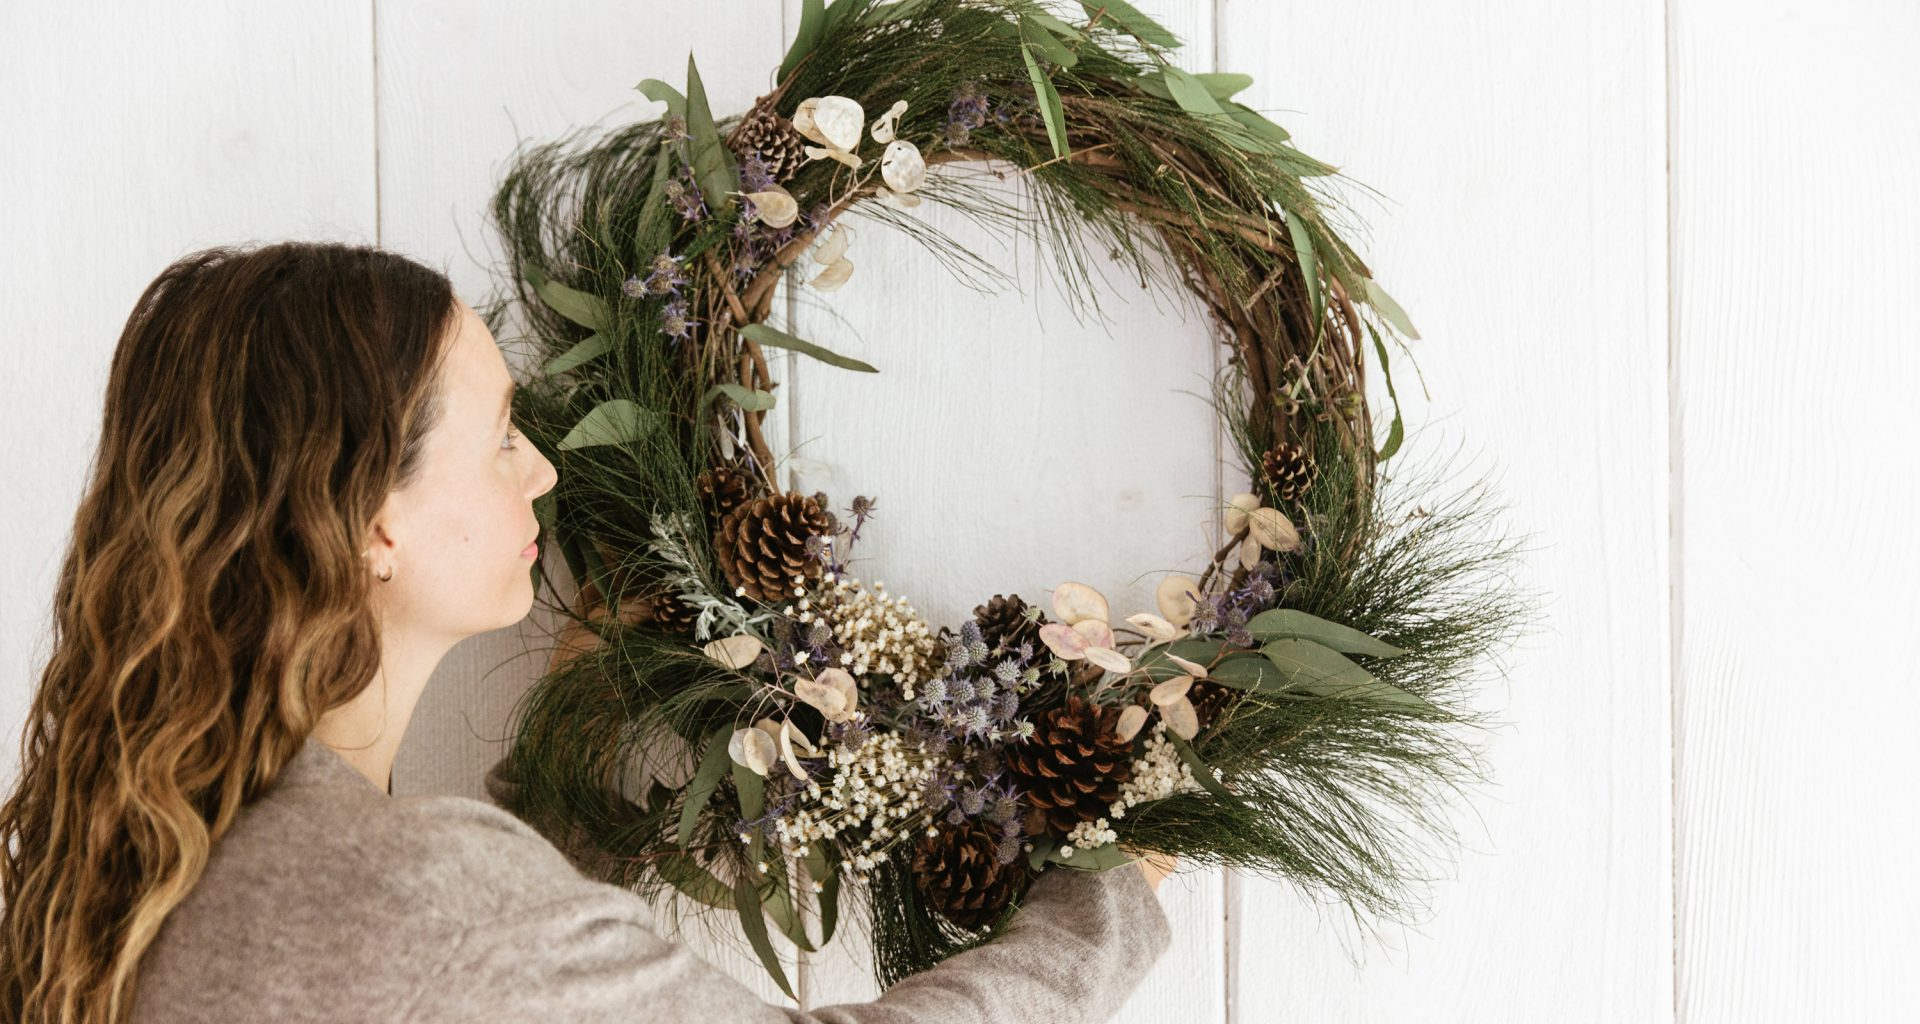 DIY with Jenni: The Perfect Holiday Wreath